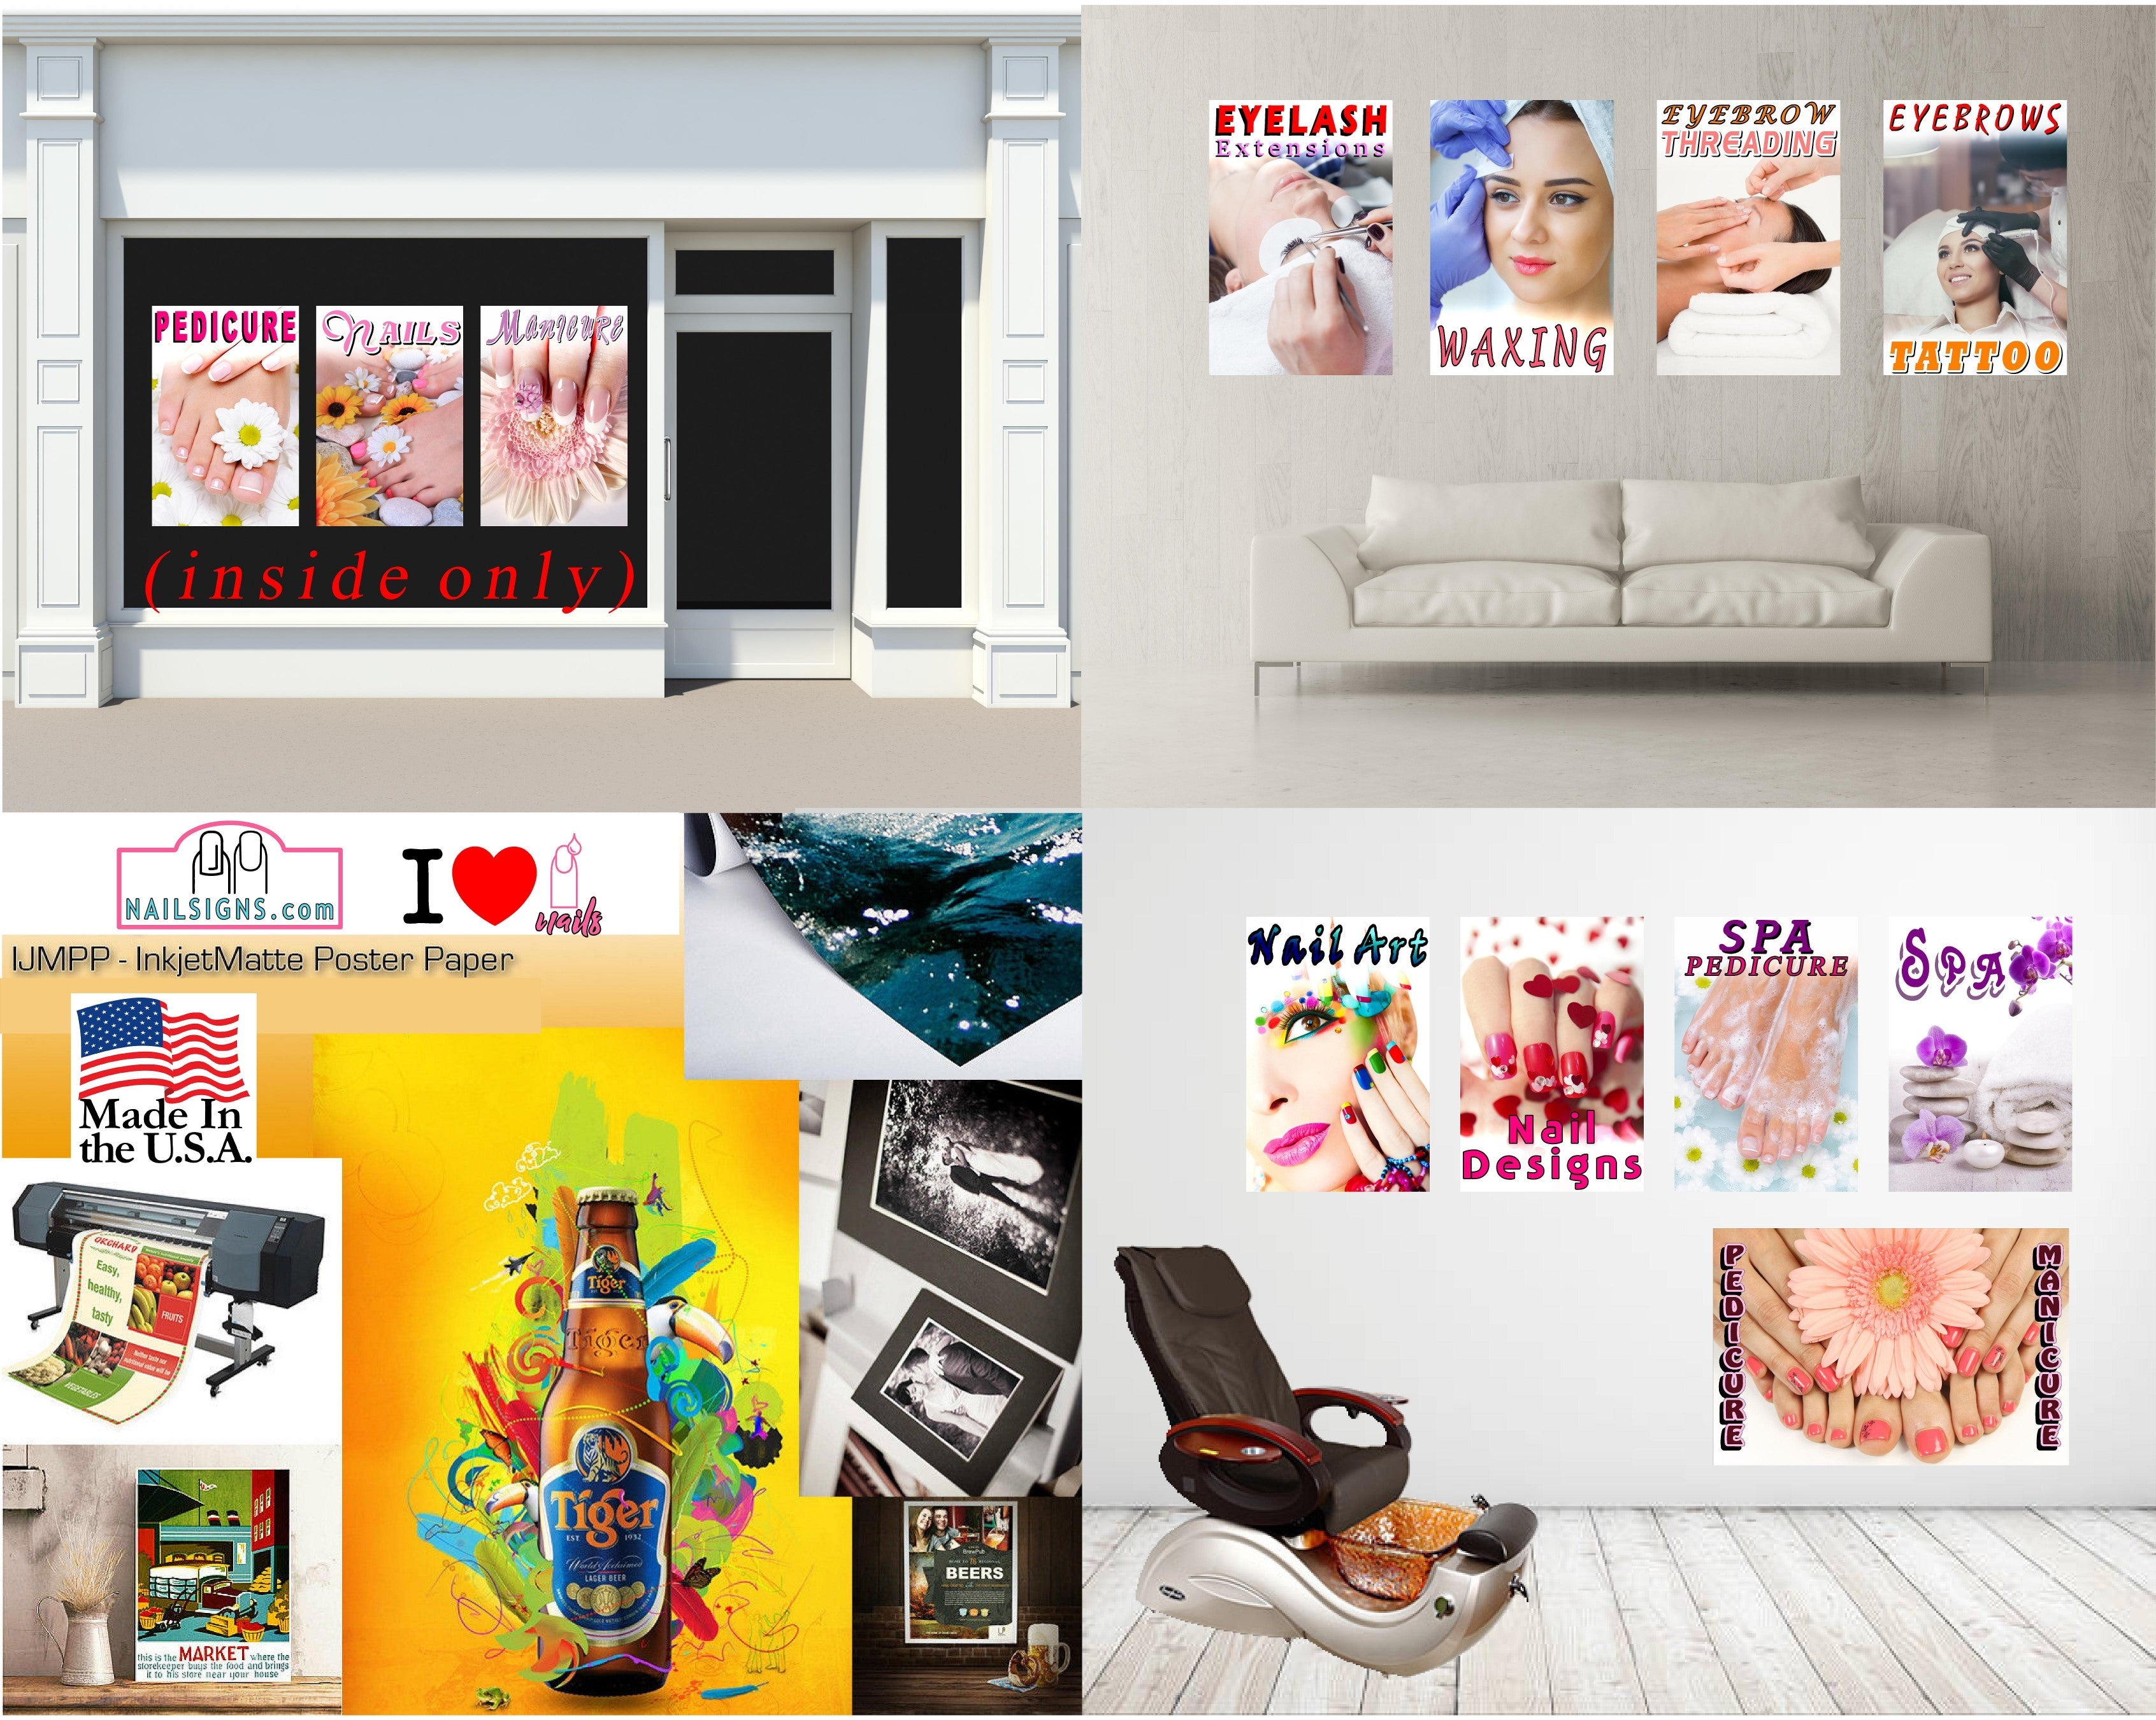 Pedicure 13 Photo-Realistic Paper Poster Premium Matte Interior Inside Sign Advertising Marketing Wall Window Non-Laminated Vertical